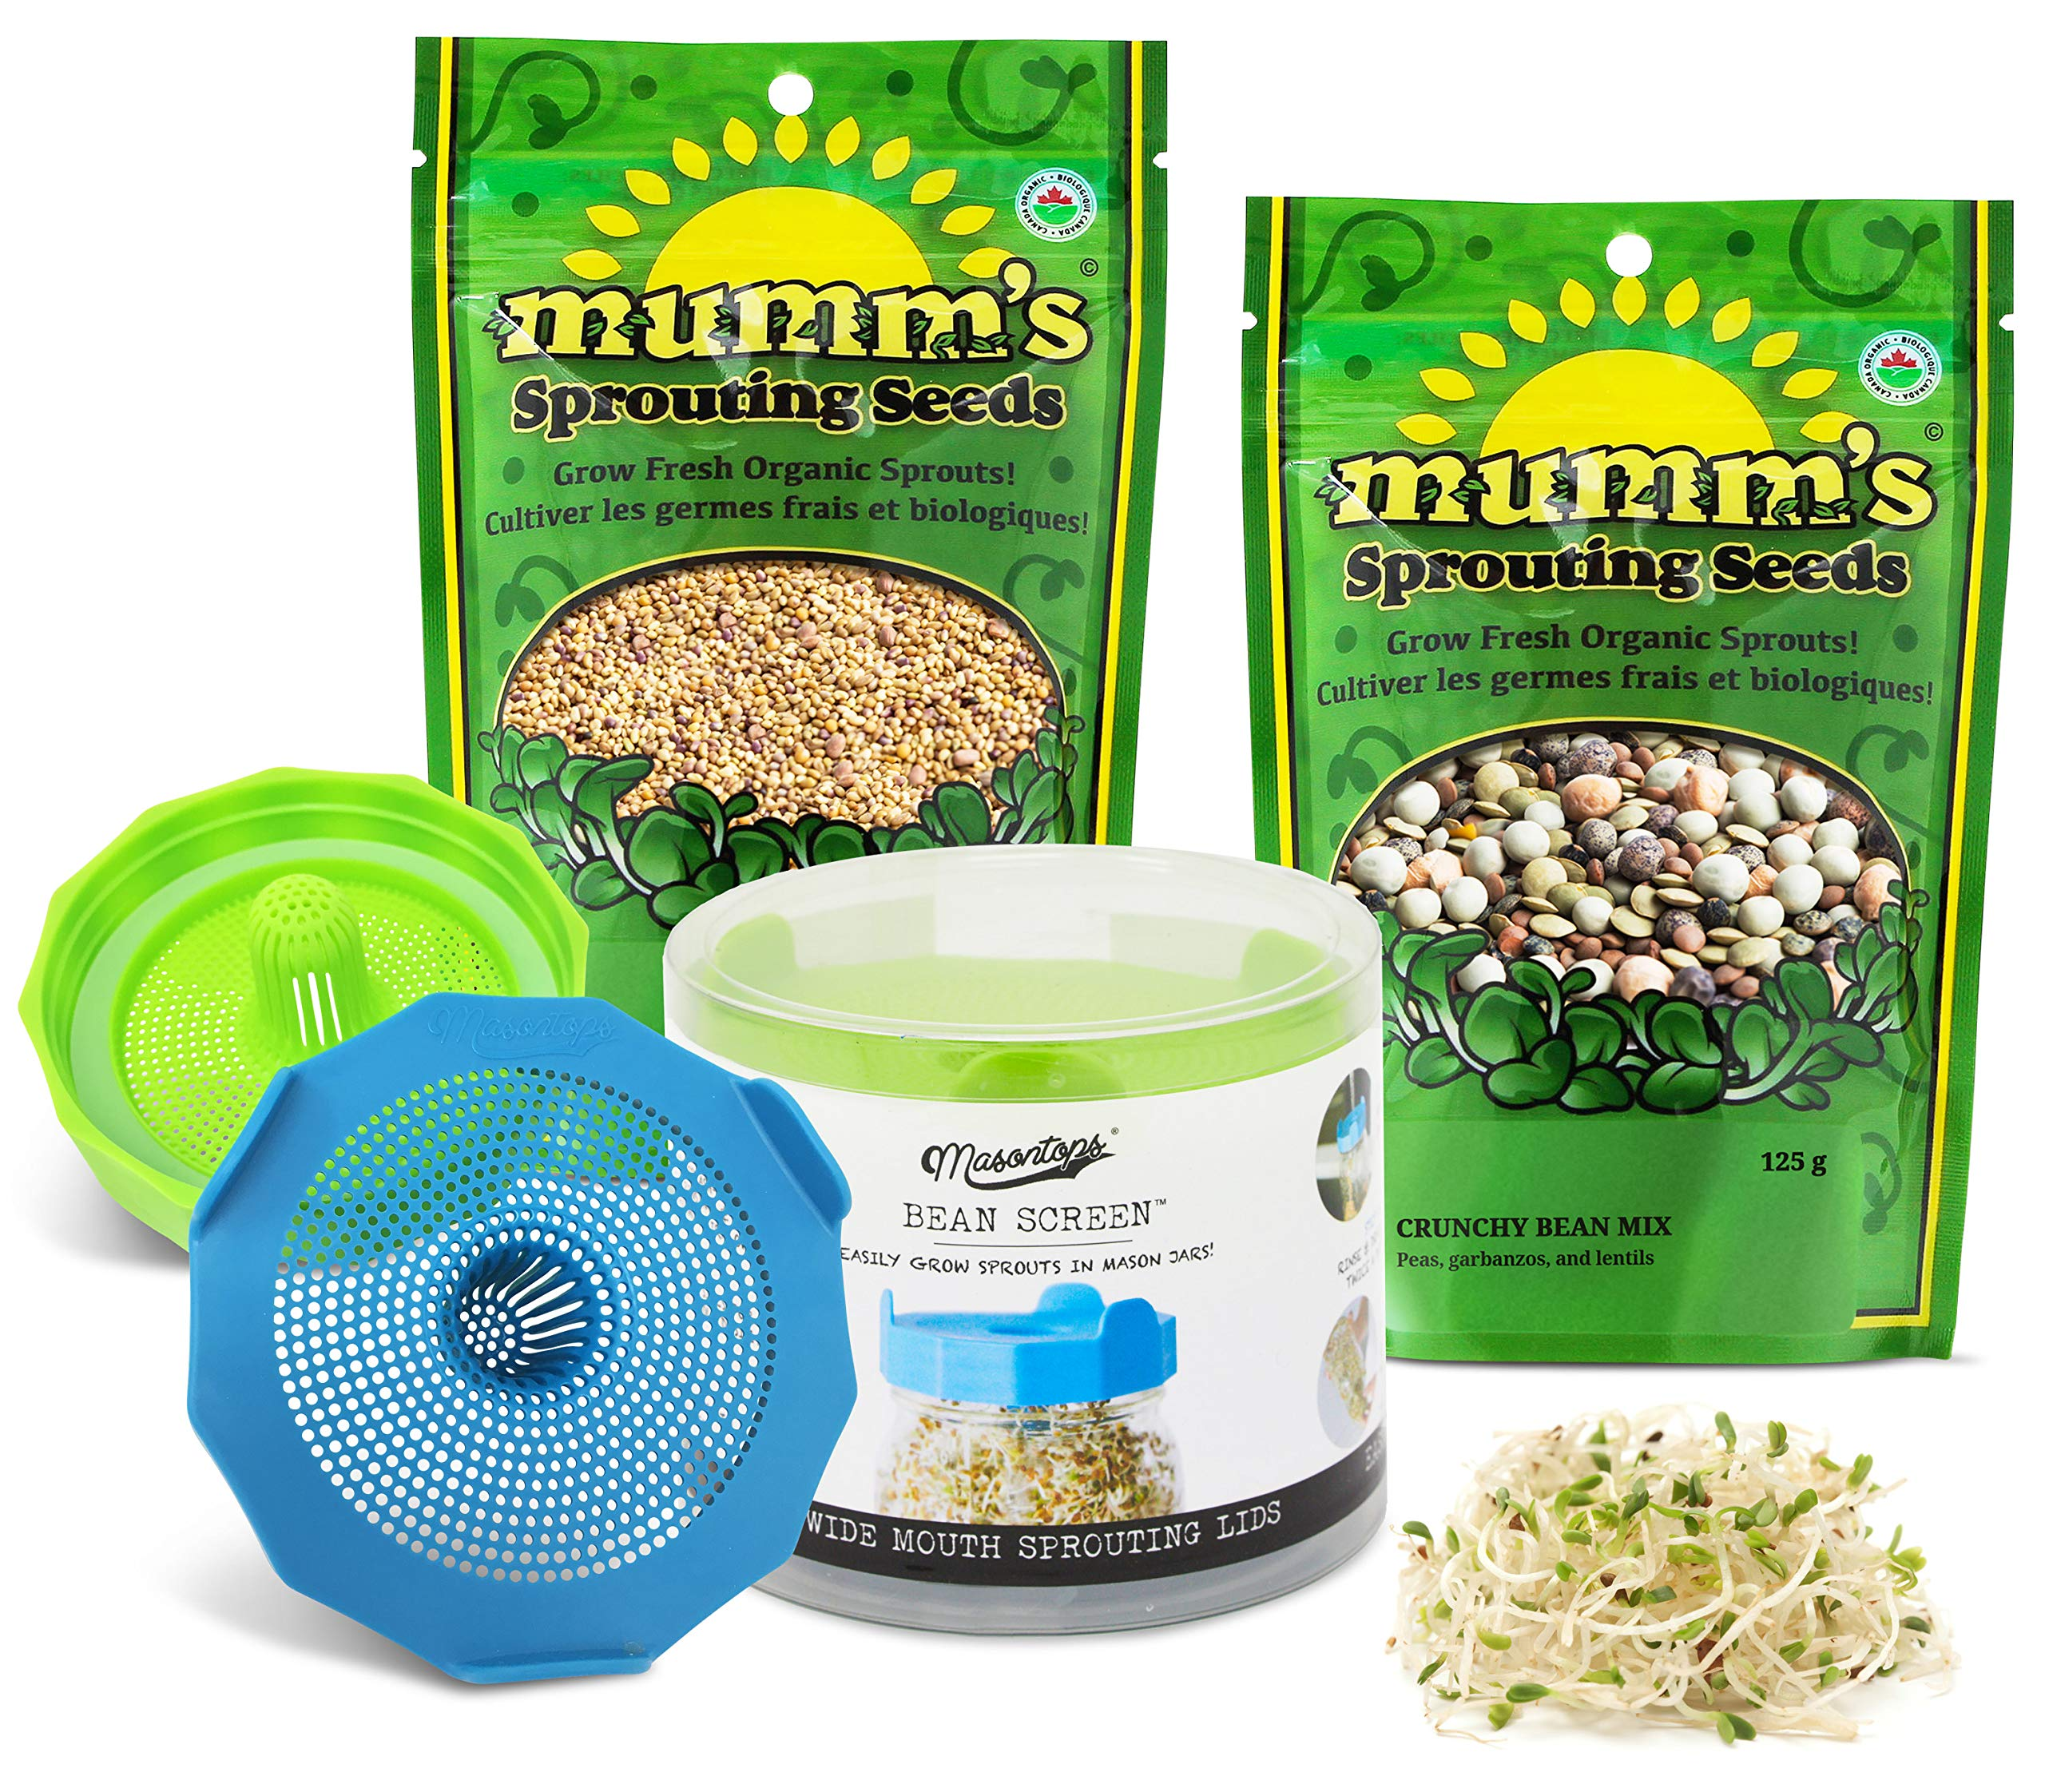 Masontops Bean Sprouting Bundle - 2 Bean Screen Sprouting Lids & 2 Sprout Seed Mixes - Wide Mouth Mason Jar Strainer by Masontops